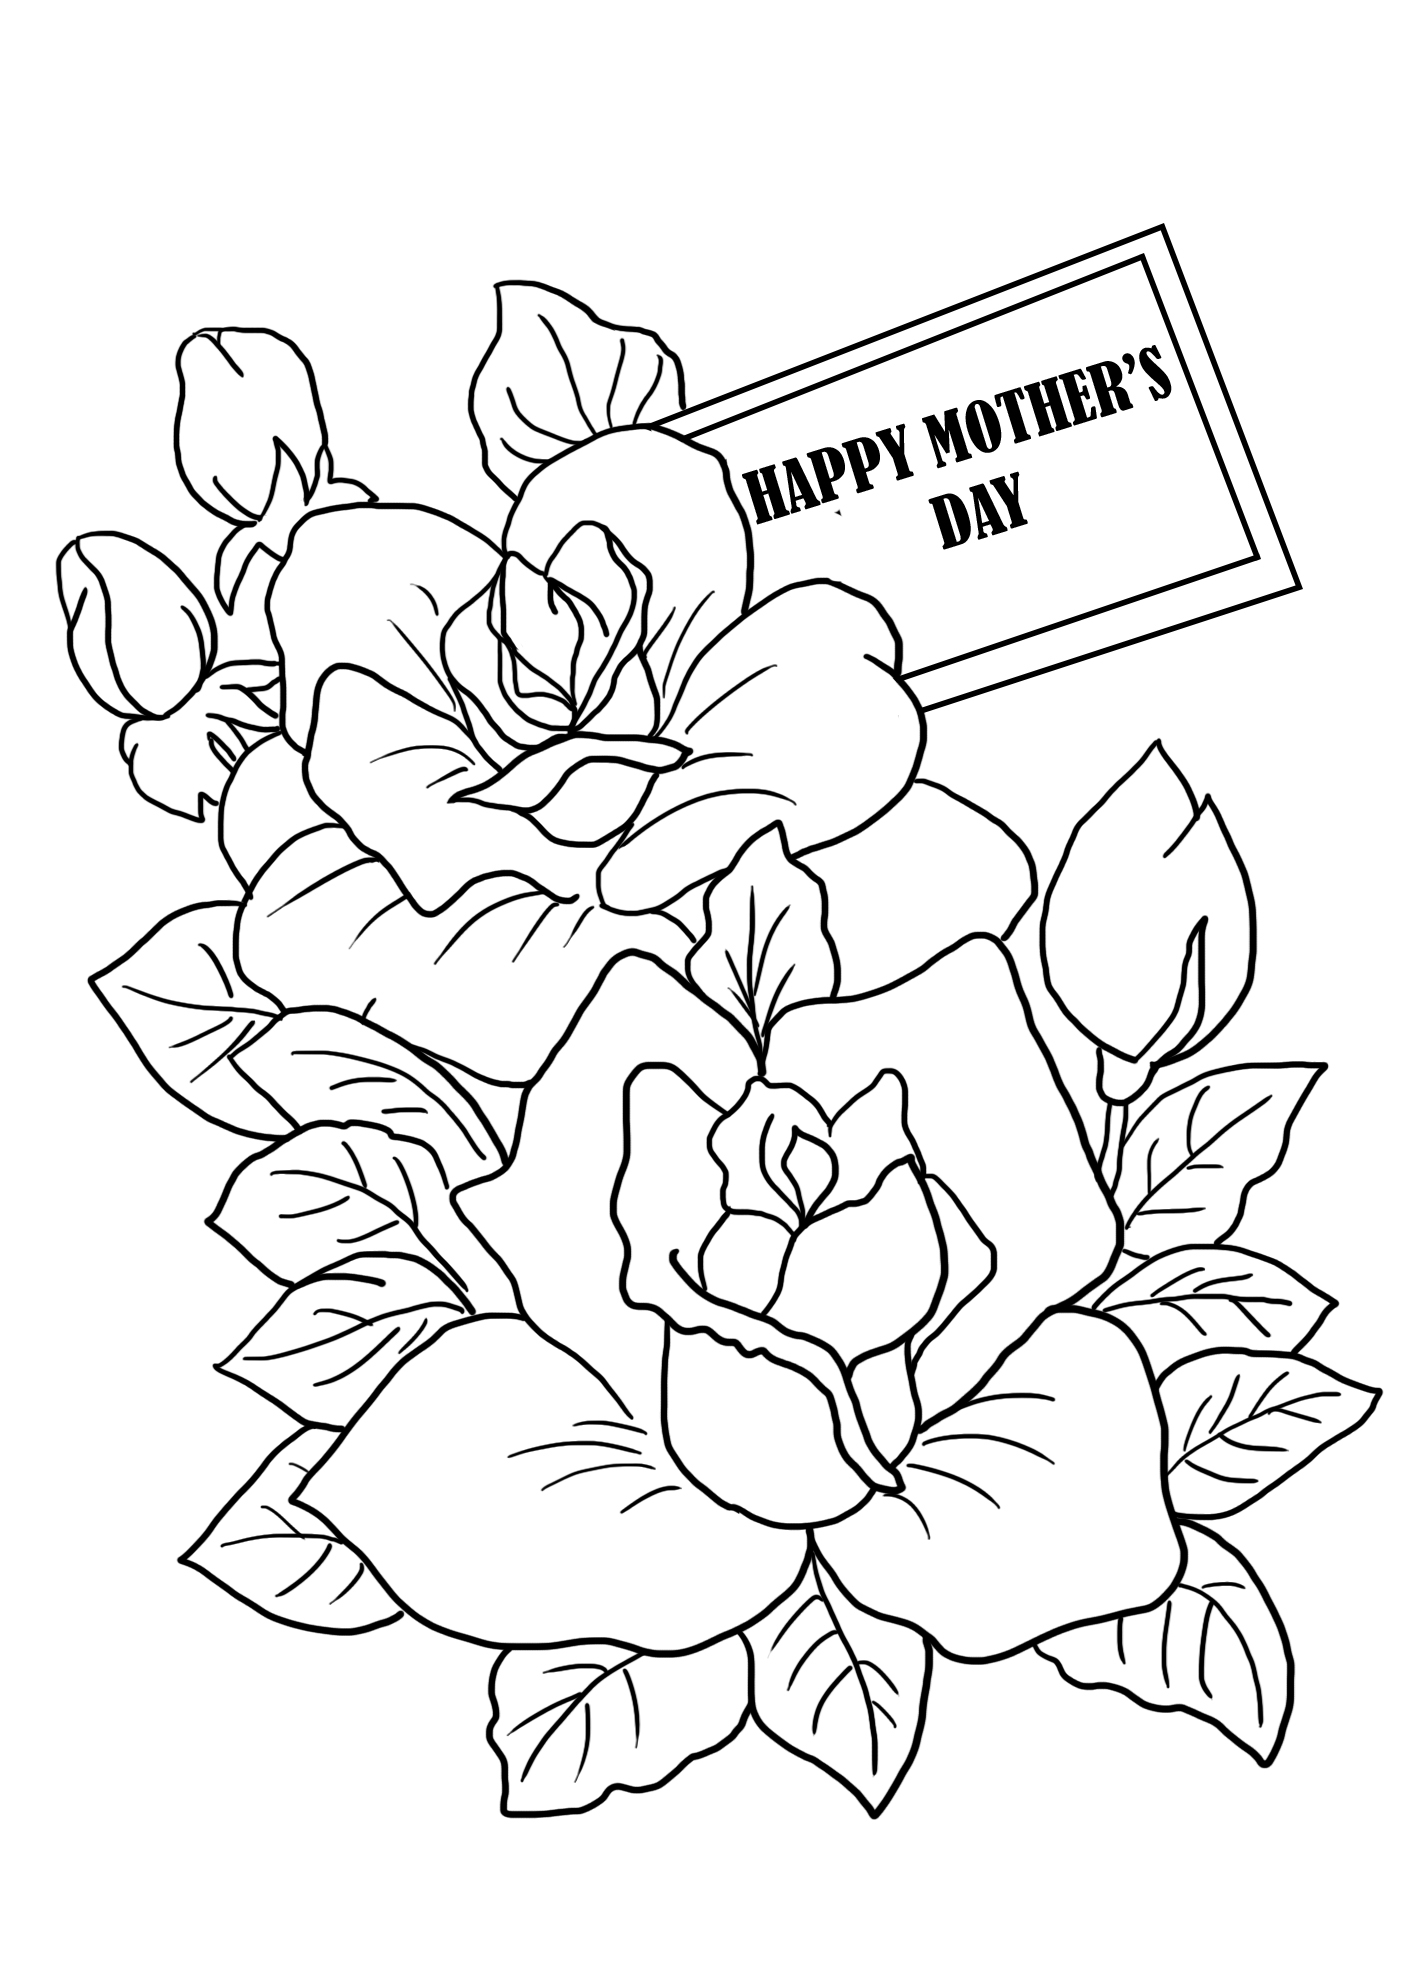 flower coloring for Mother's day